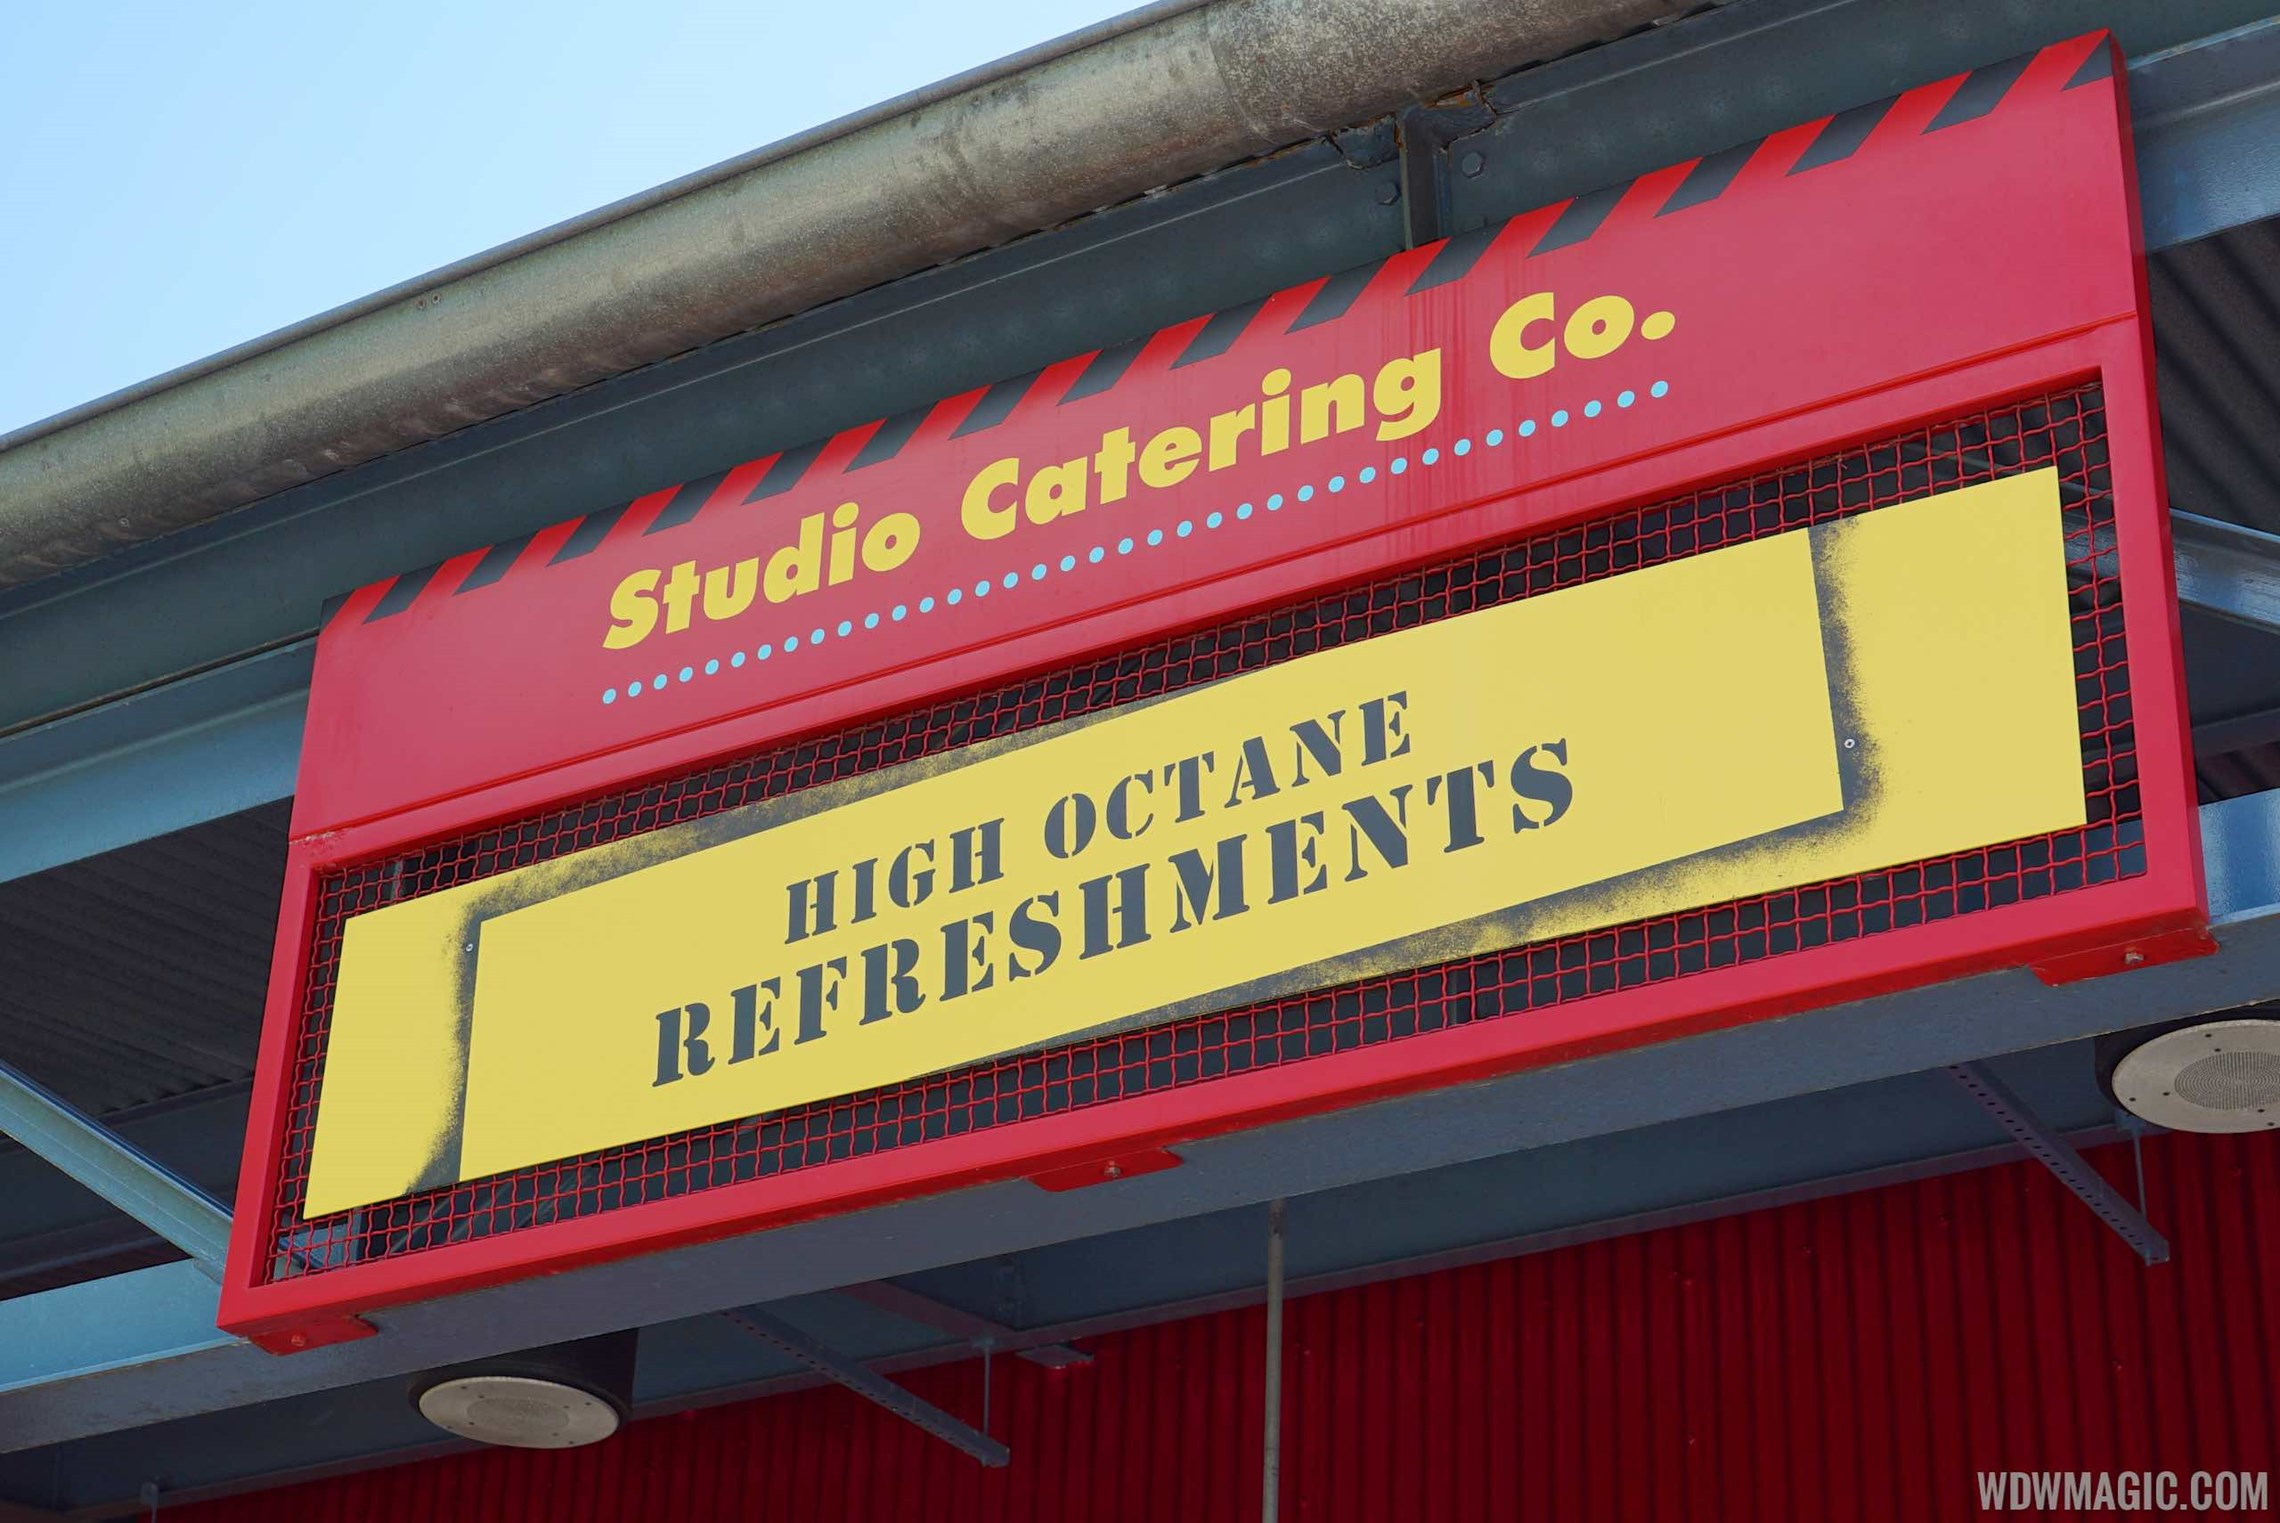 High Octane Refreshments overview